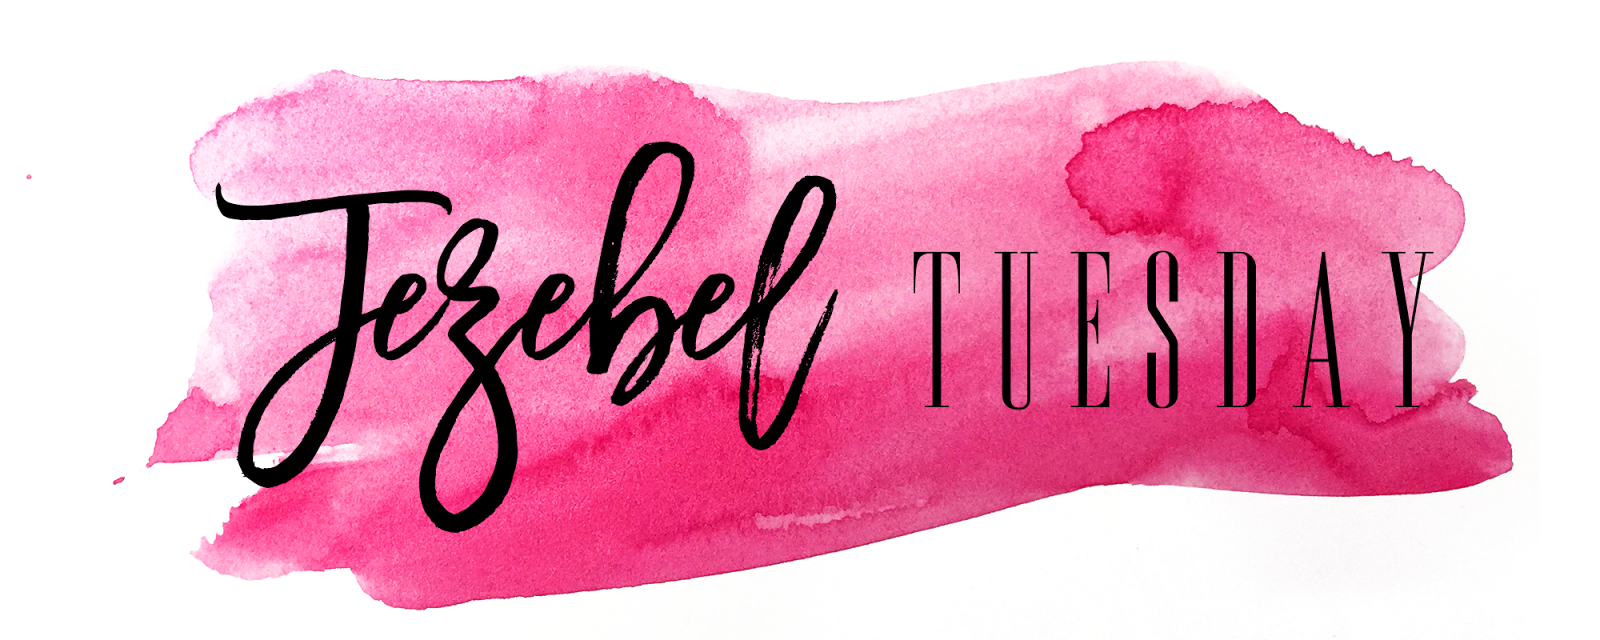 Jezebel Tuesday